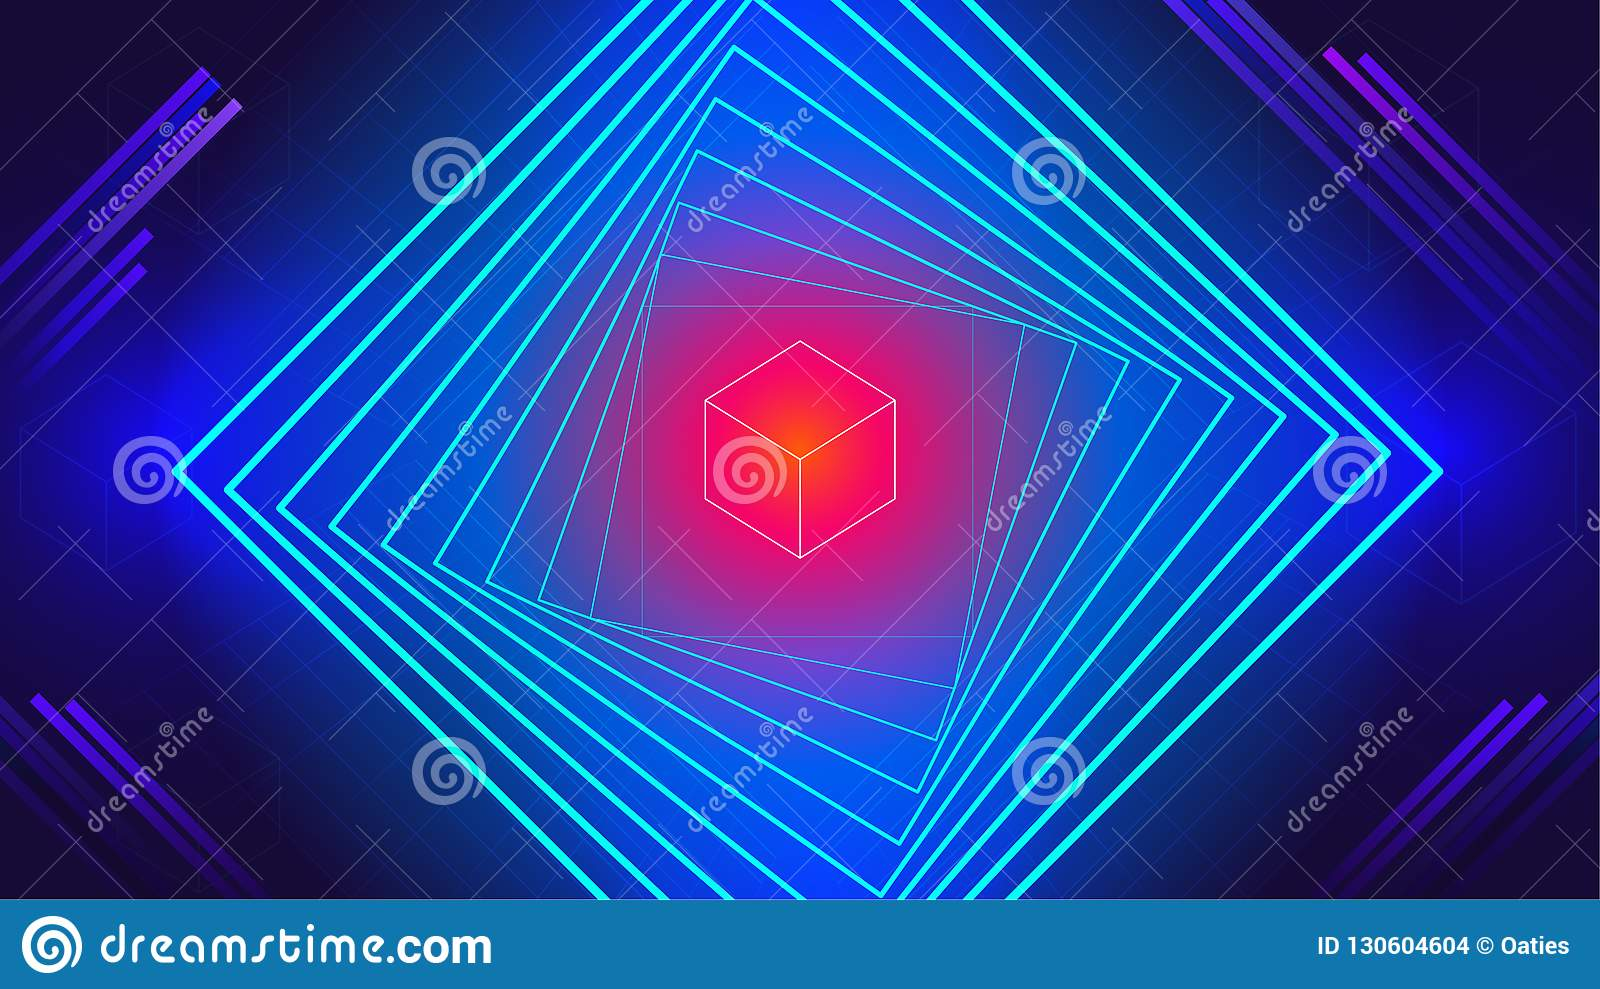 Geometric Tech Electronic Dance Music Elements Abstract